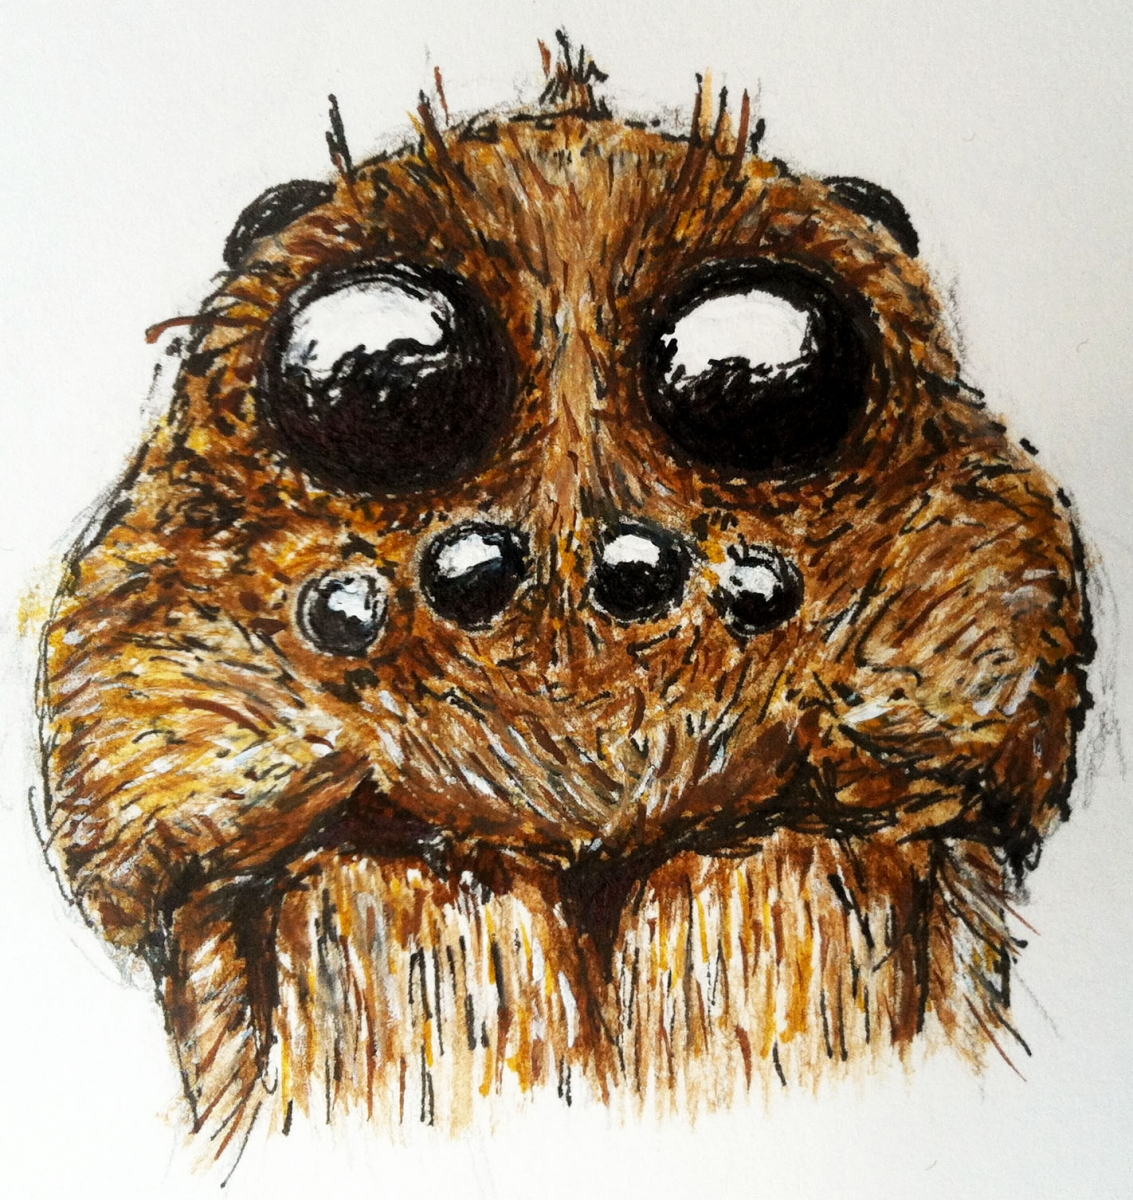 [A drawing in ink of the face of a wolf spider; drawing by Heather Clendenin.]